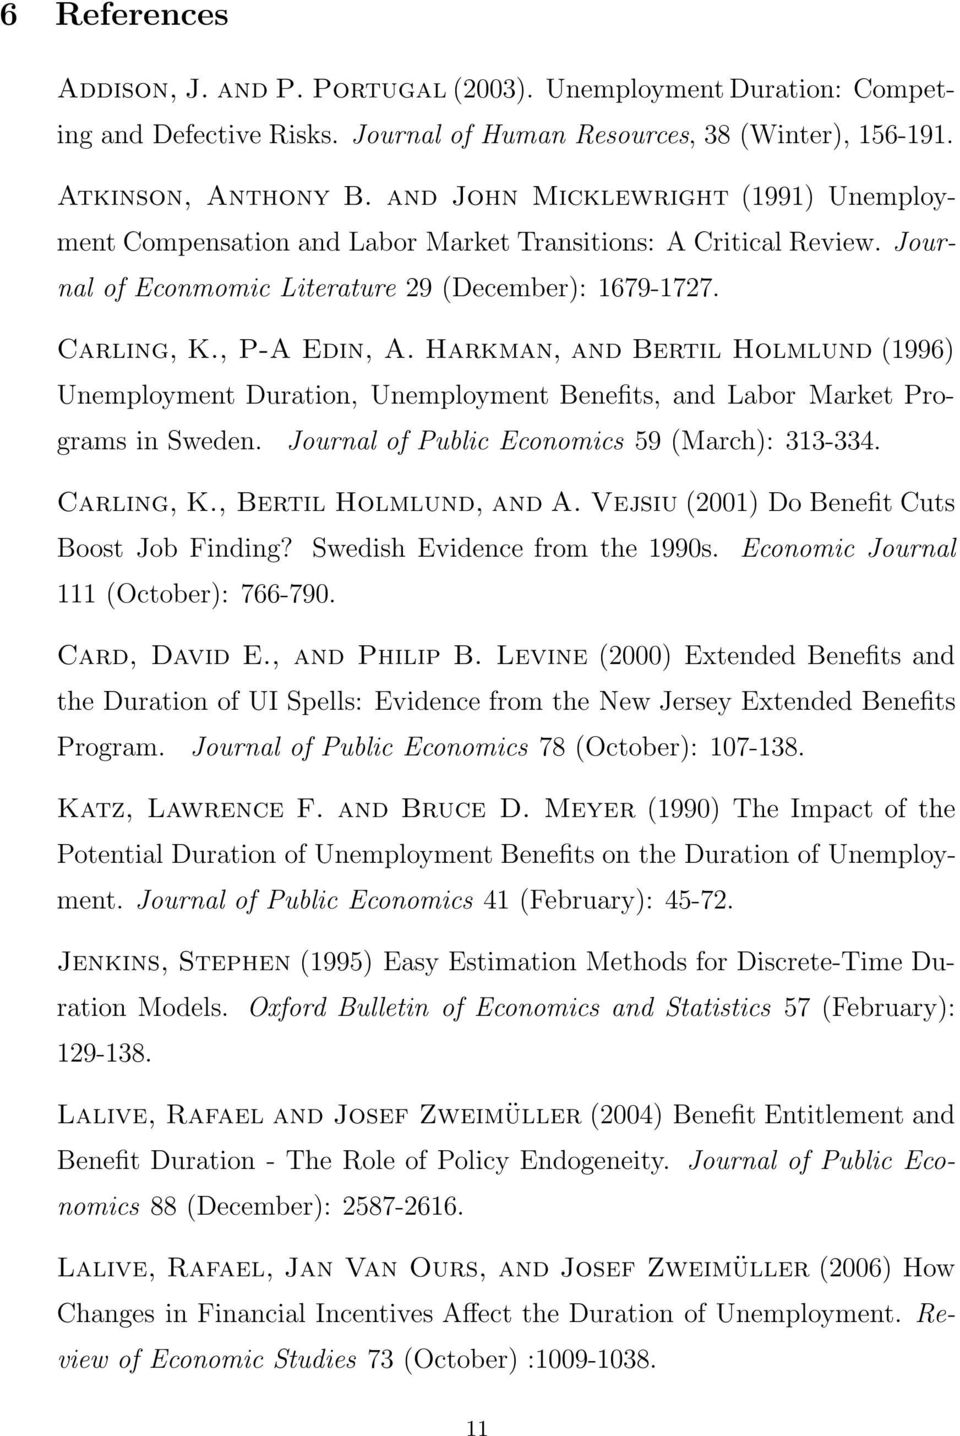 Harkman, and Bertil Holmlund (1996) Unemployment Duration, Unemployment Benefits, and Labor Market Programs in Sweden. Journal of Public Economics 59 (March): 313-334. Carling, K.